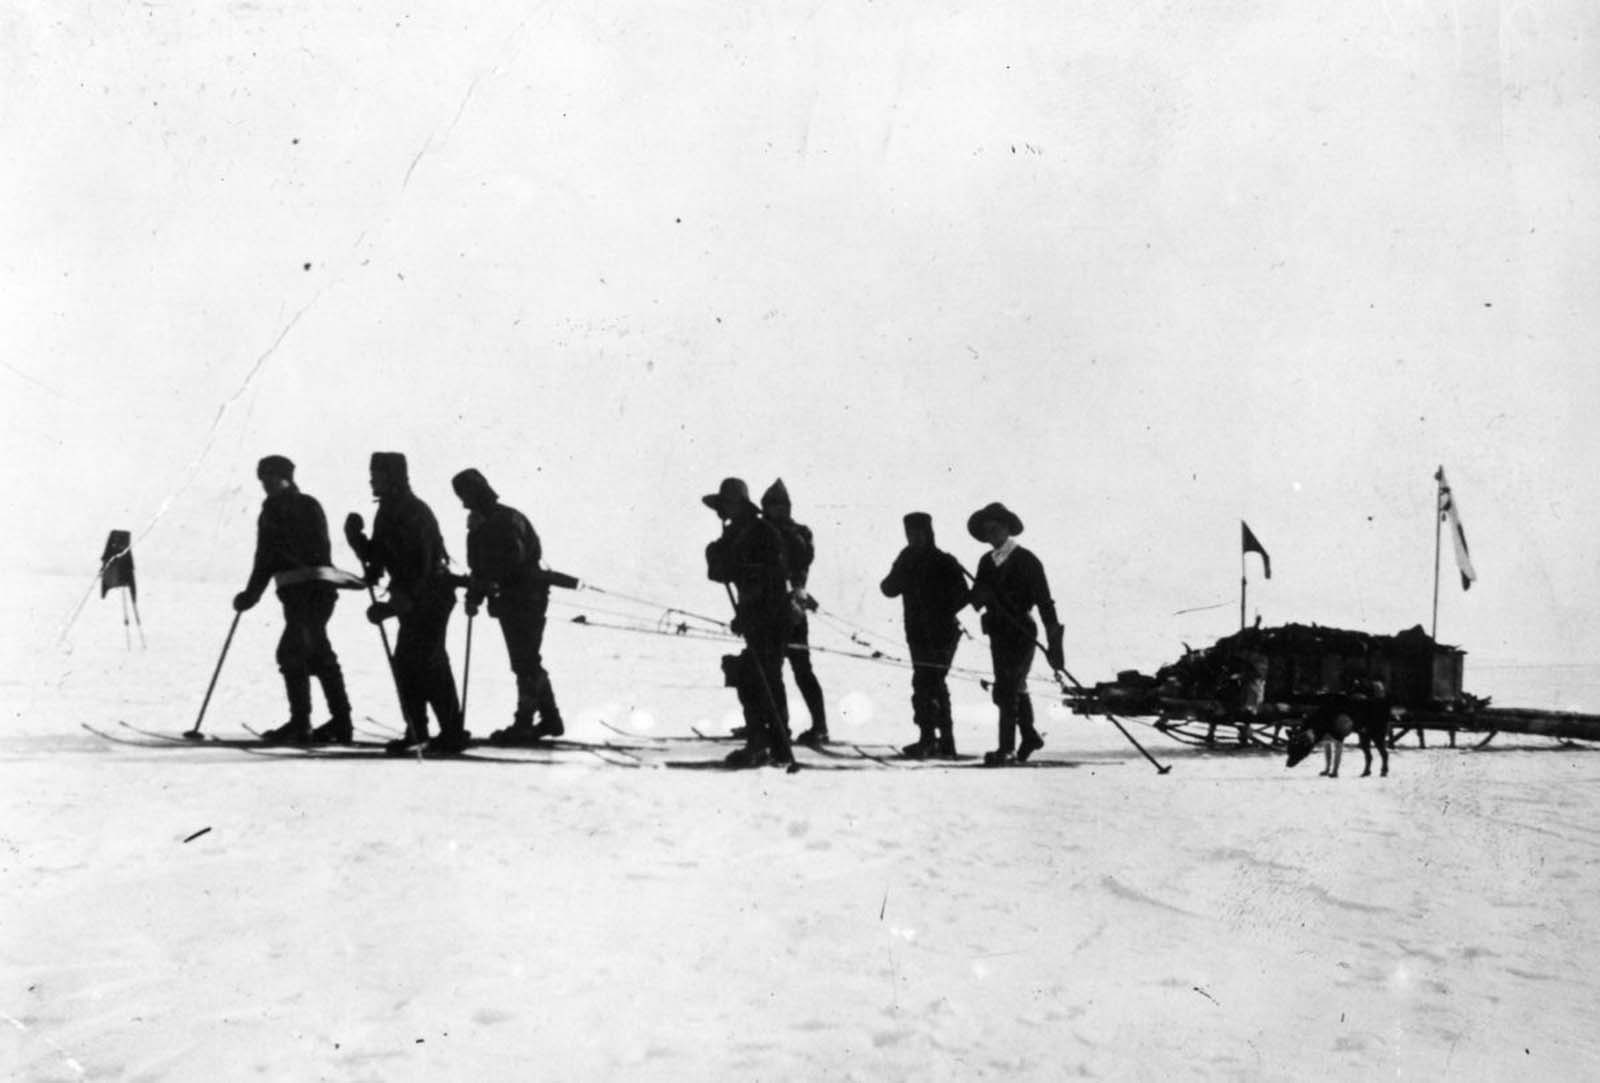 Capt. Scott leads a sledging party on a bid to reach the South Pole before Amundsen. January 1912.